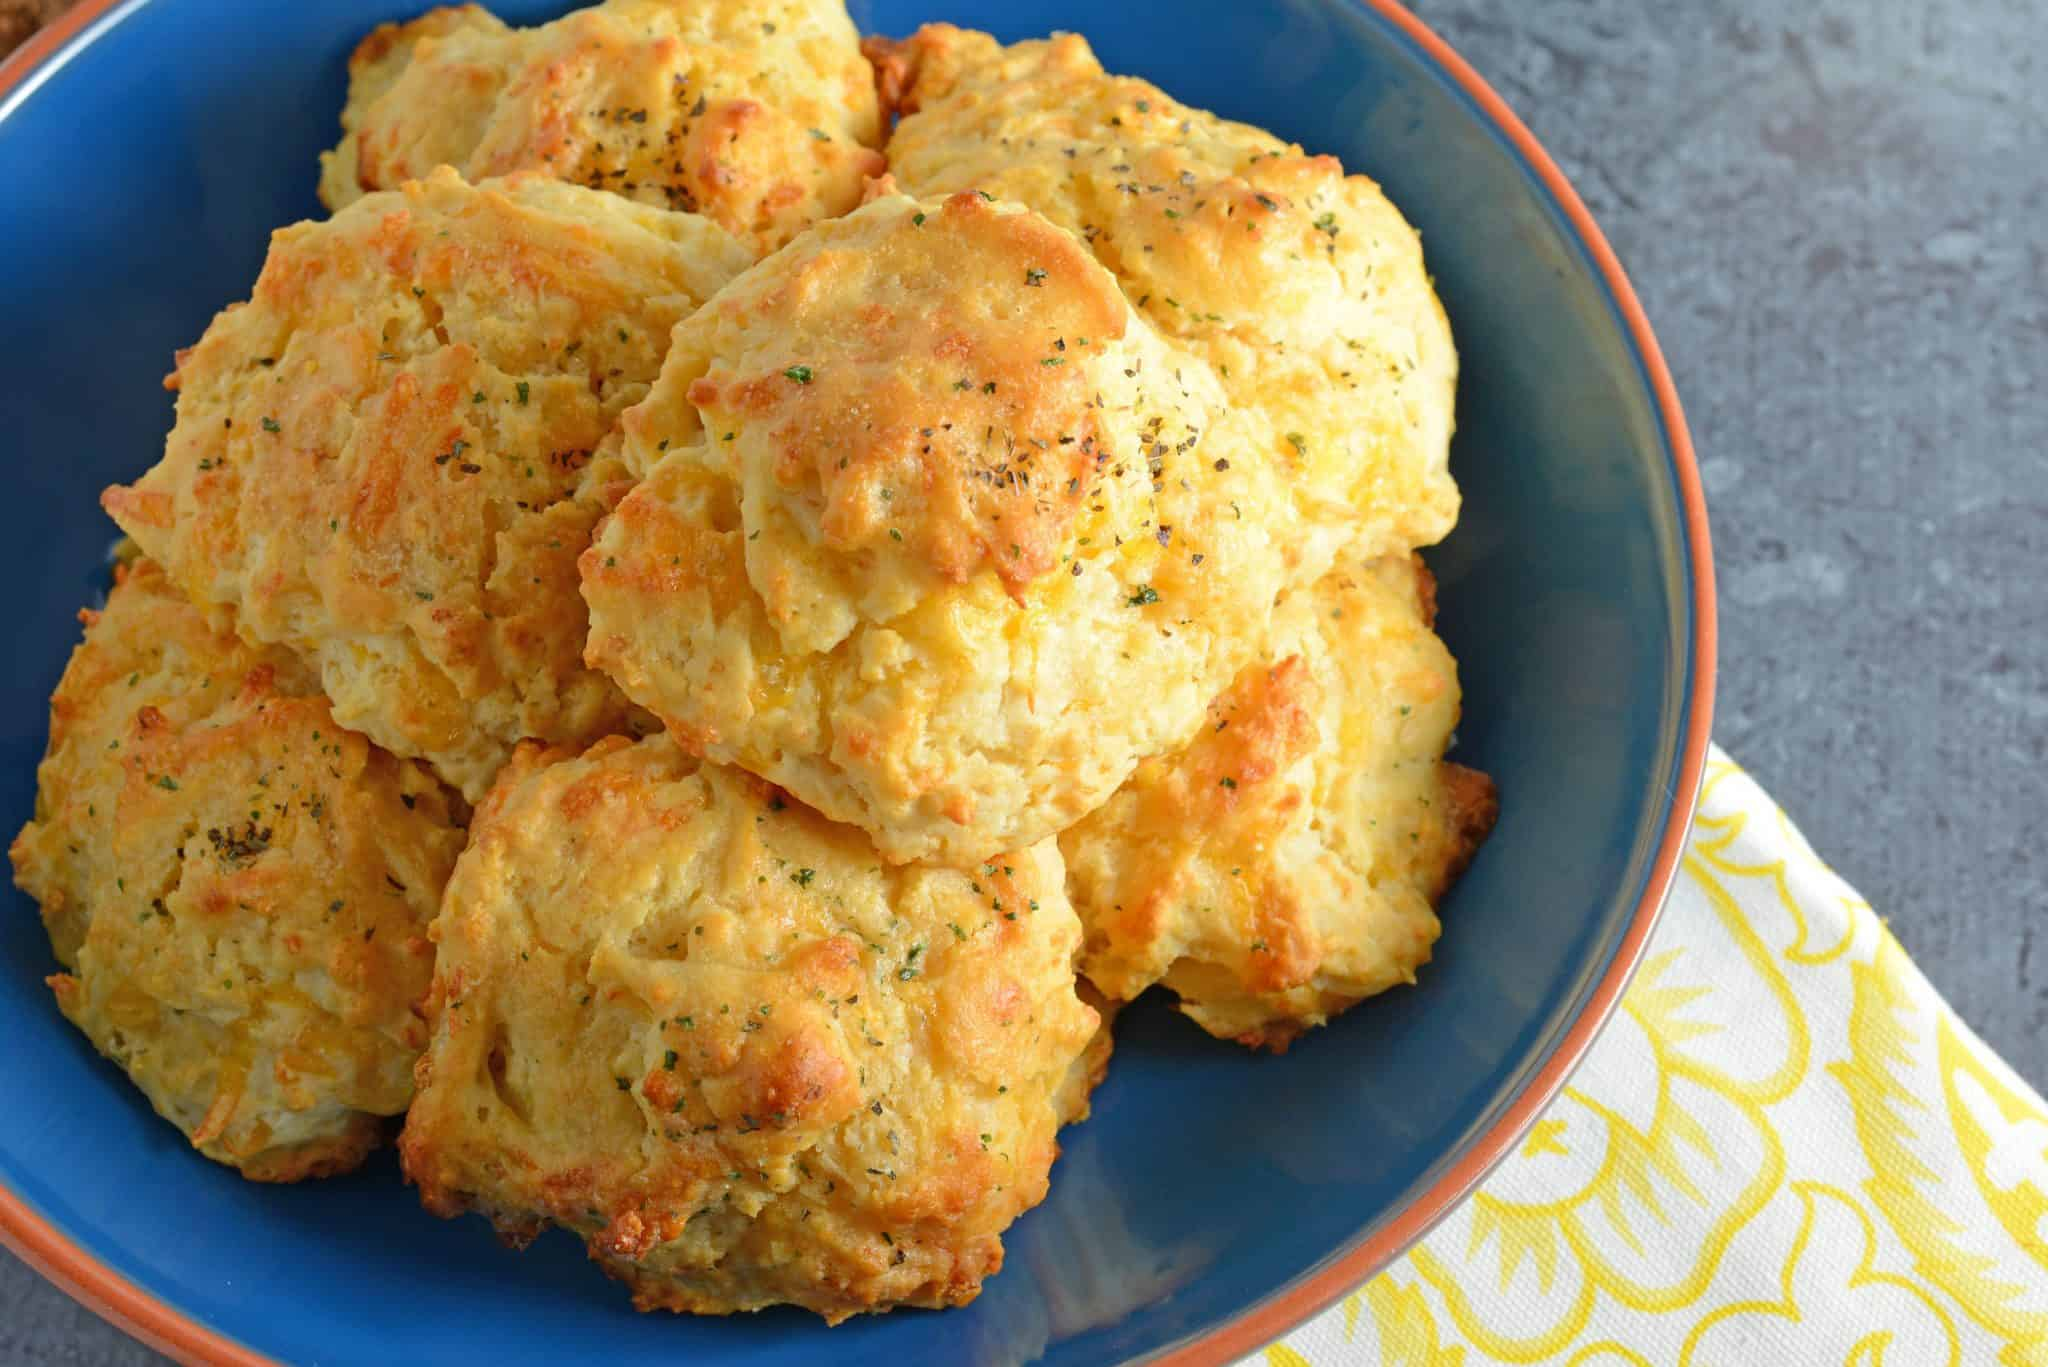 These copycat Red Lobster Cheddar Bay Biscuits are so easy to make you will make them for dinner every night! And they only take 20 minutes!